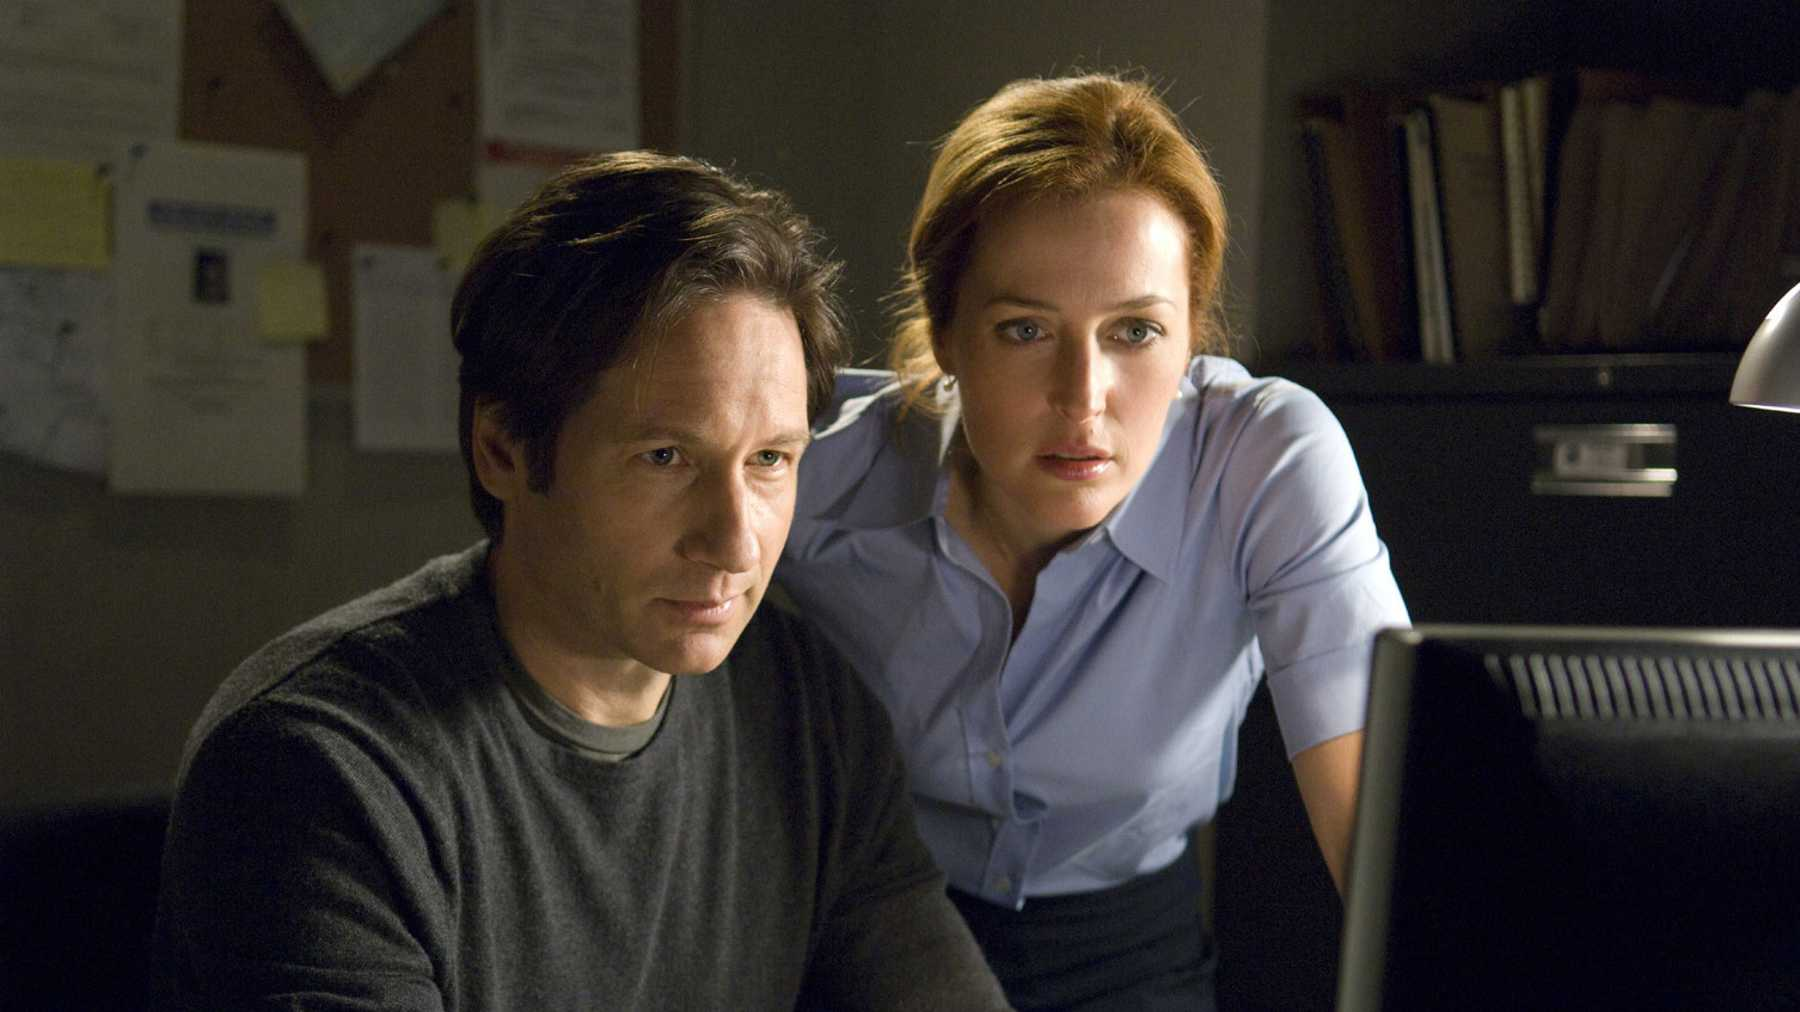 X-Files Archive: David Duchovny and Gillian Anderson in